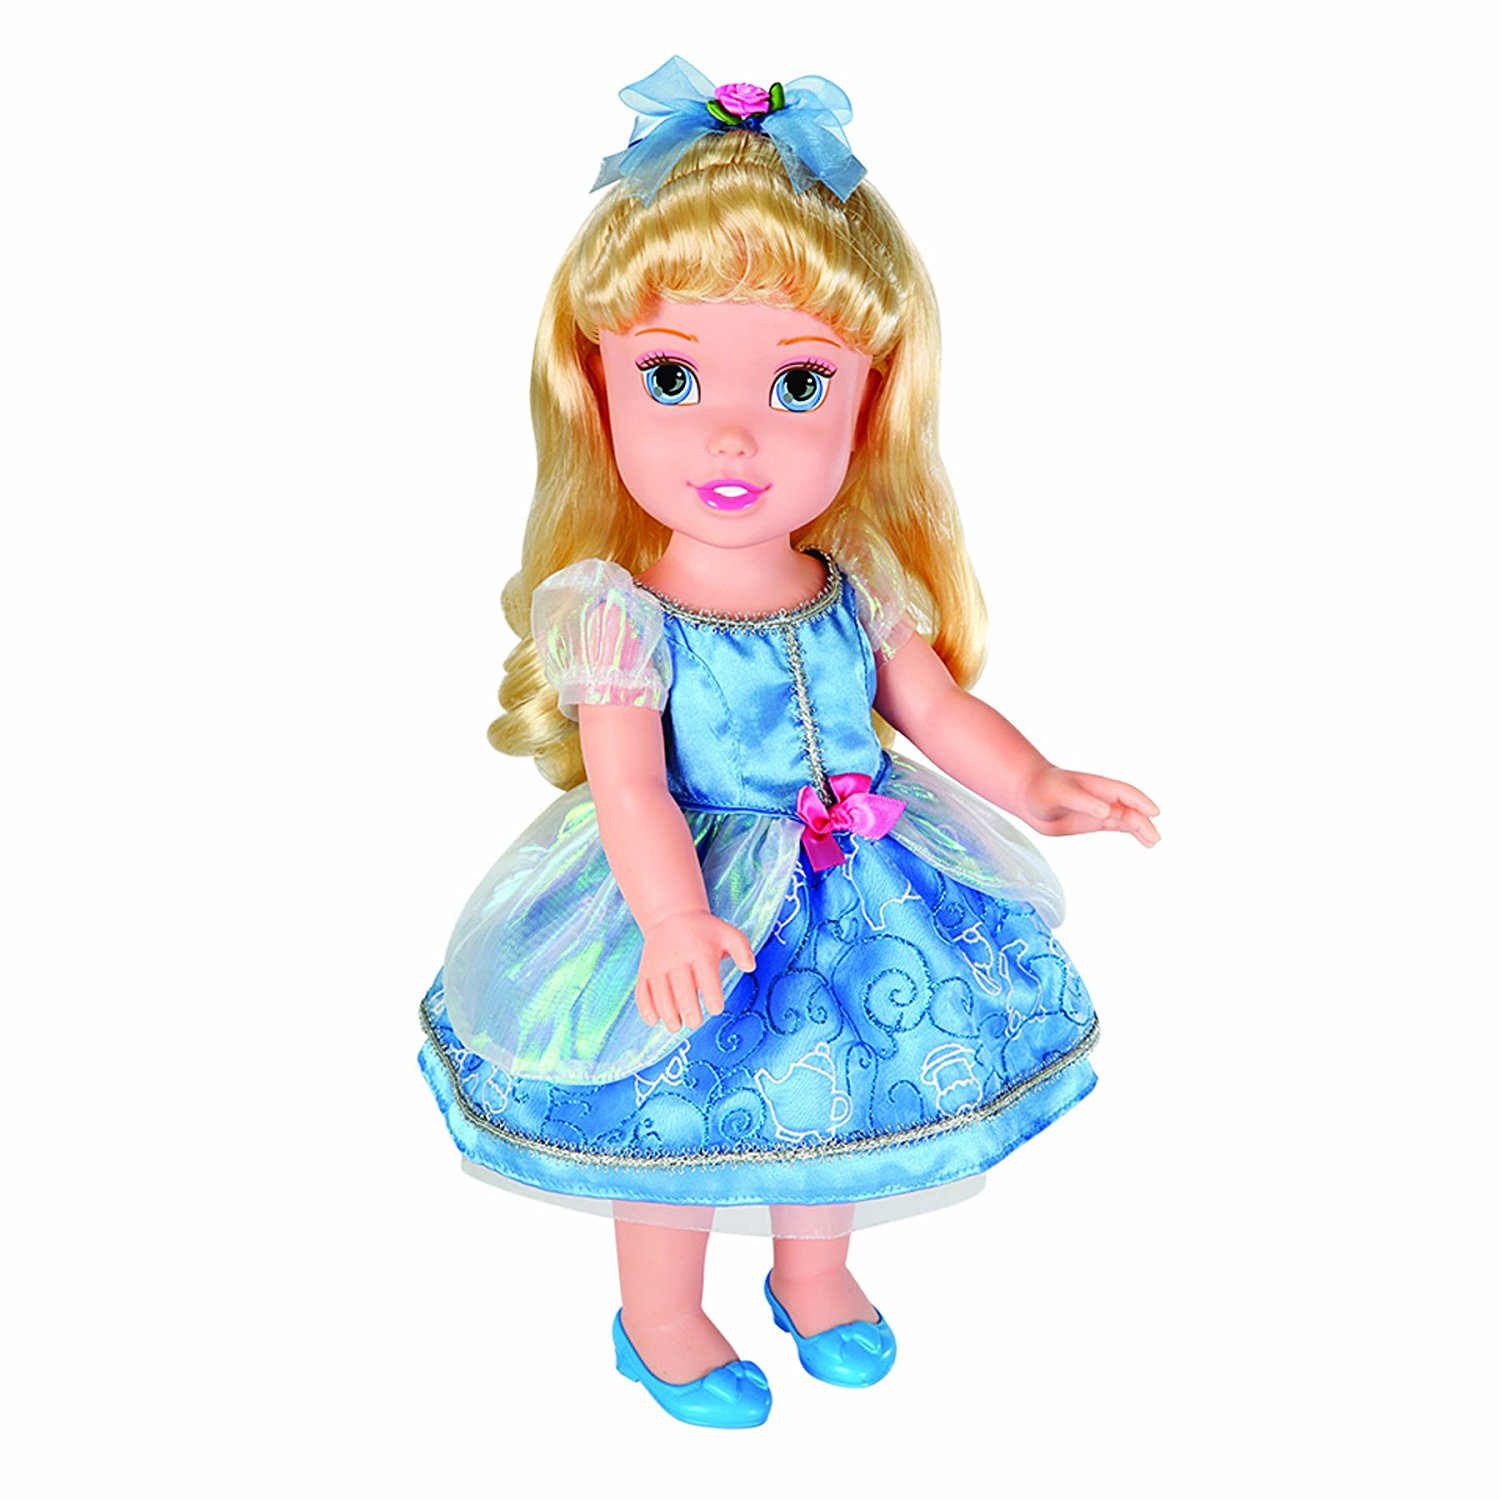 Disney Princess Party Time Doll -Cindy, Comes with an ice cream cone with sound function By Tolly Tots